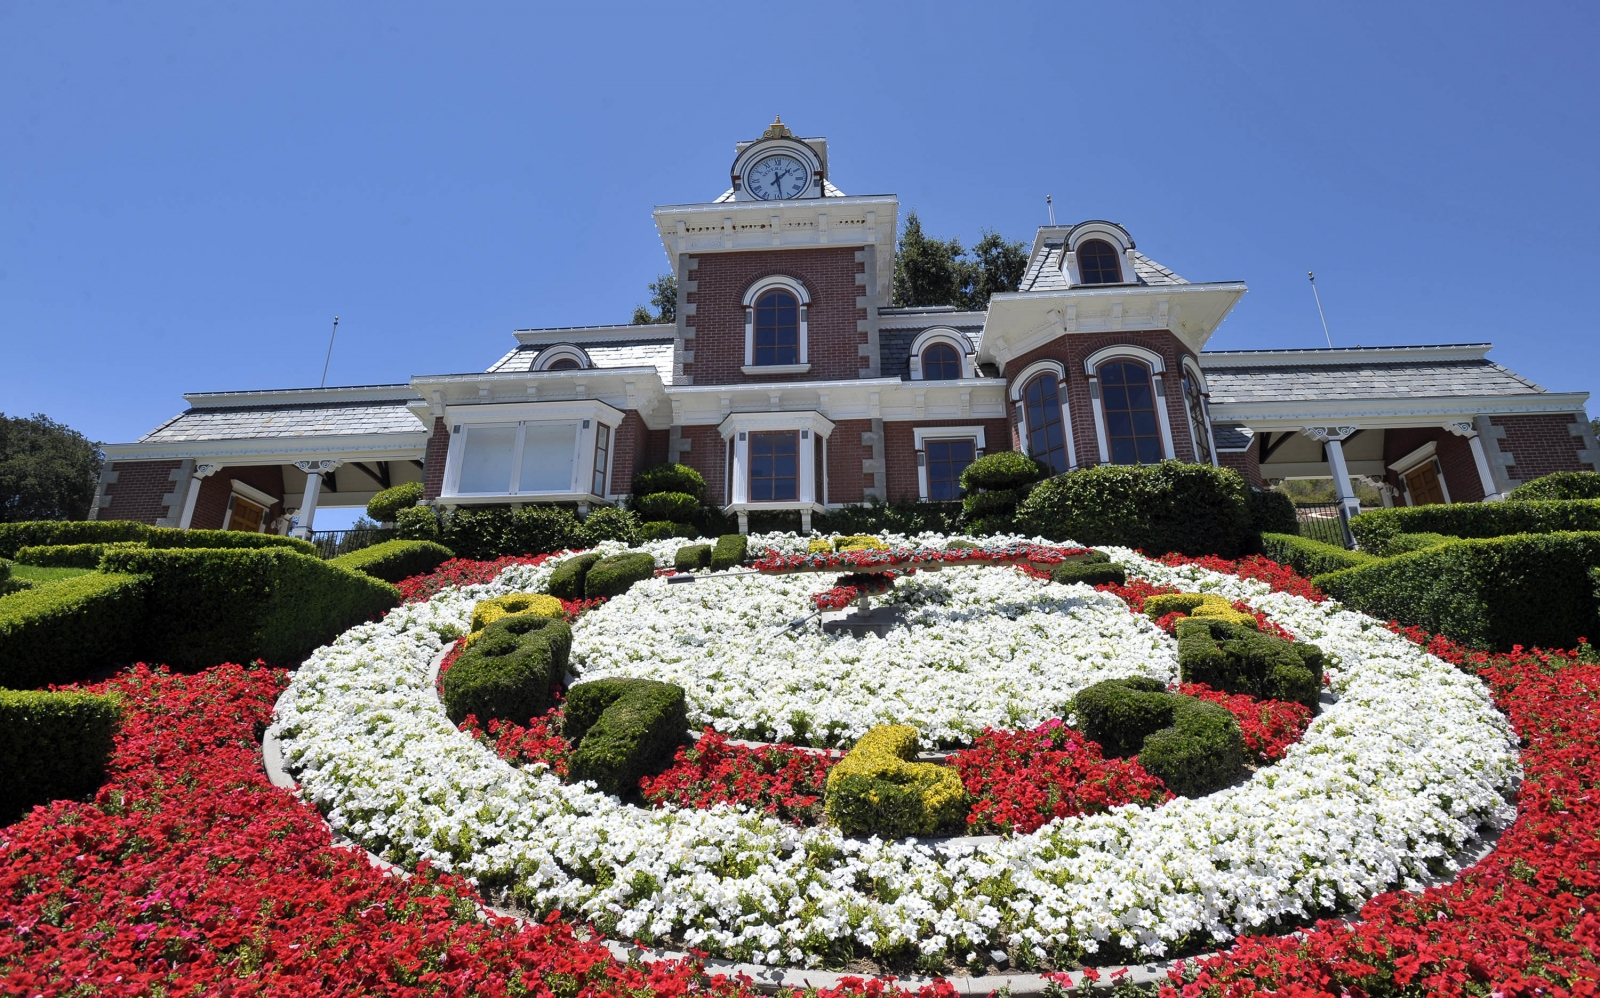 Michael jackson neverland ranch on sale for 100m 6 for Michael jackson house for sale